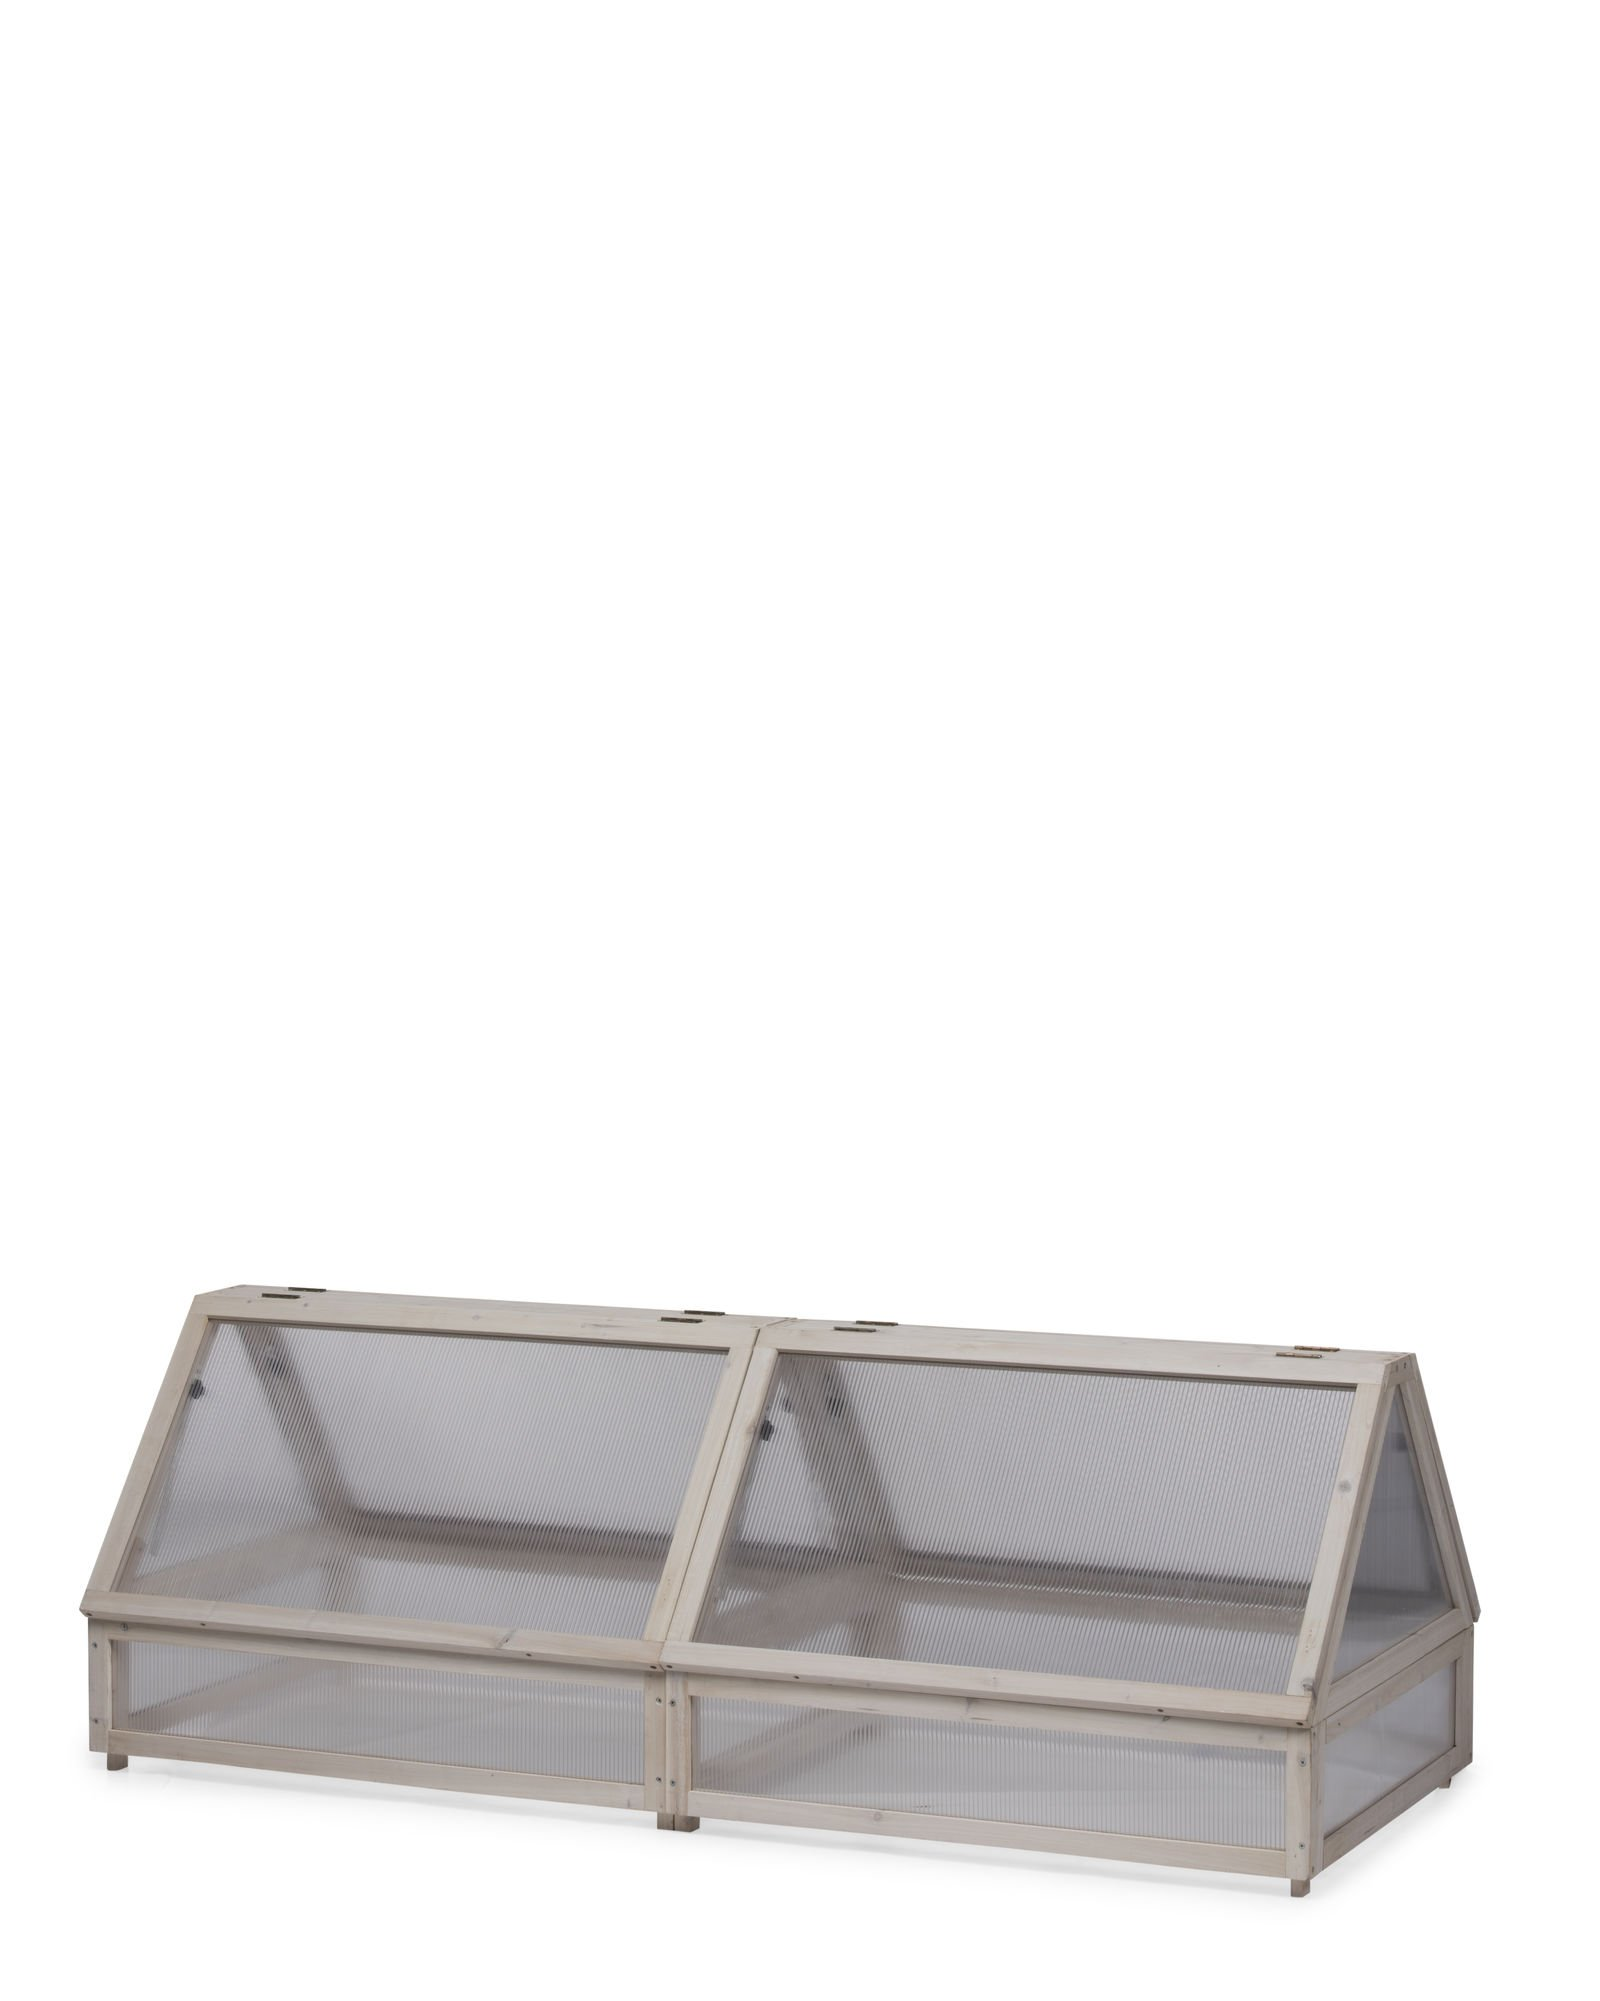 Cold Frame For VegTrug8482;